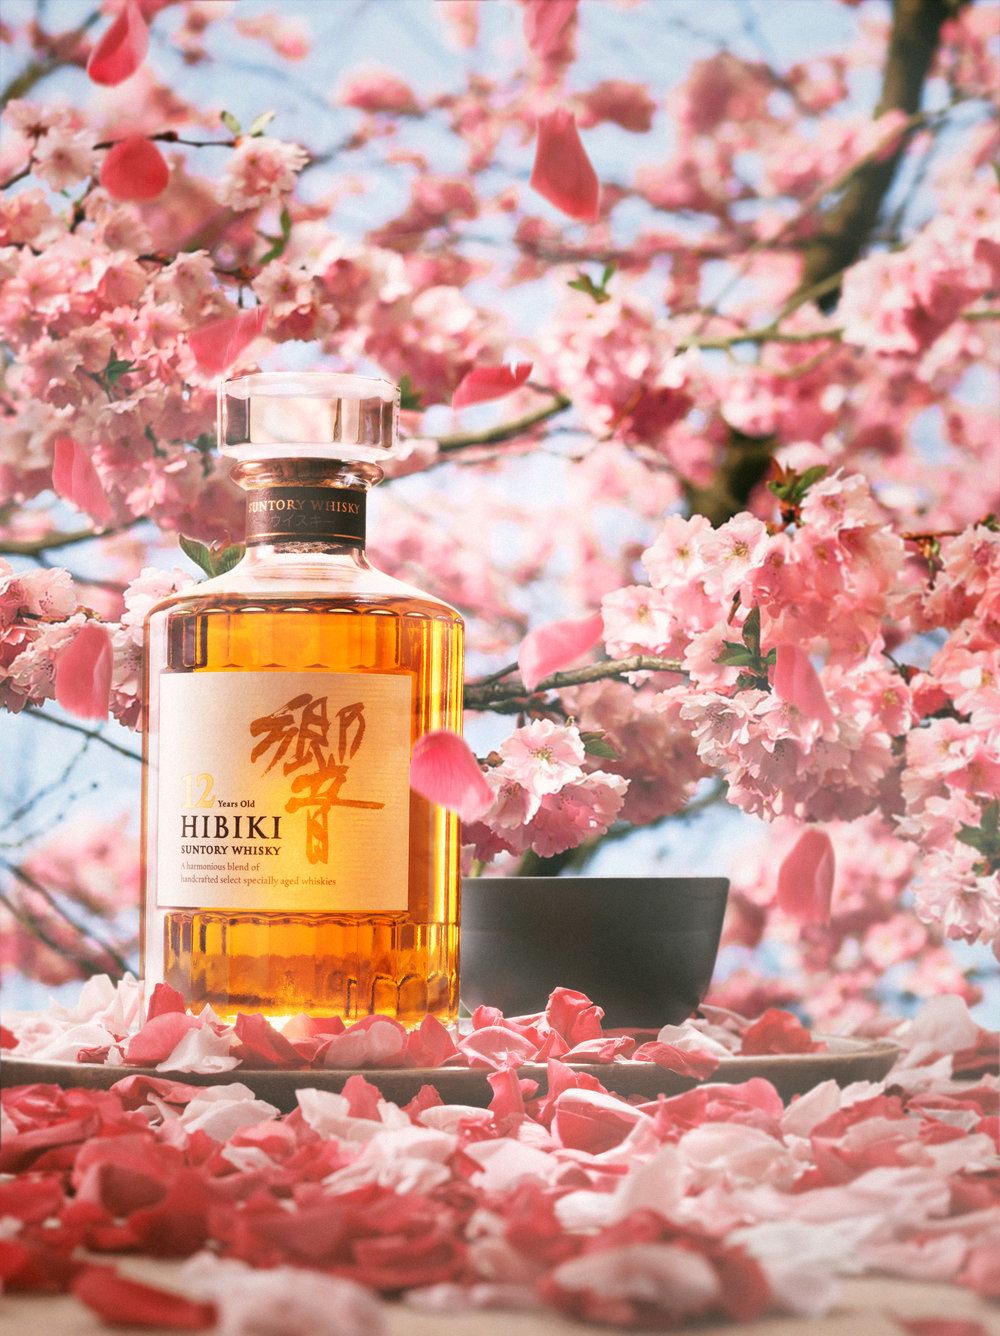 Hibiki Whisky Food and Drink Photography - Lux Studio